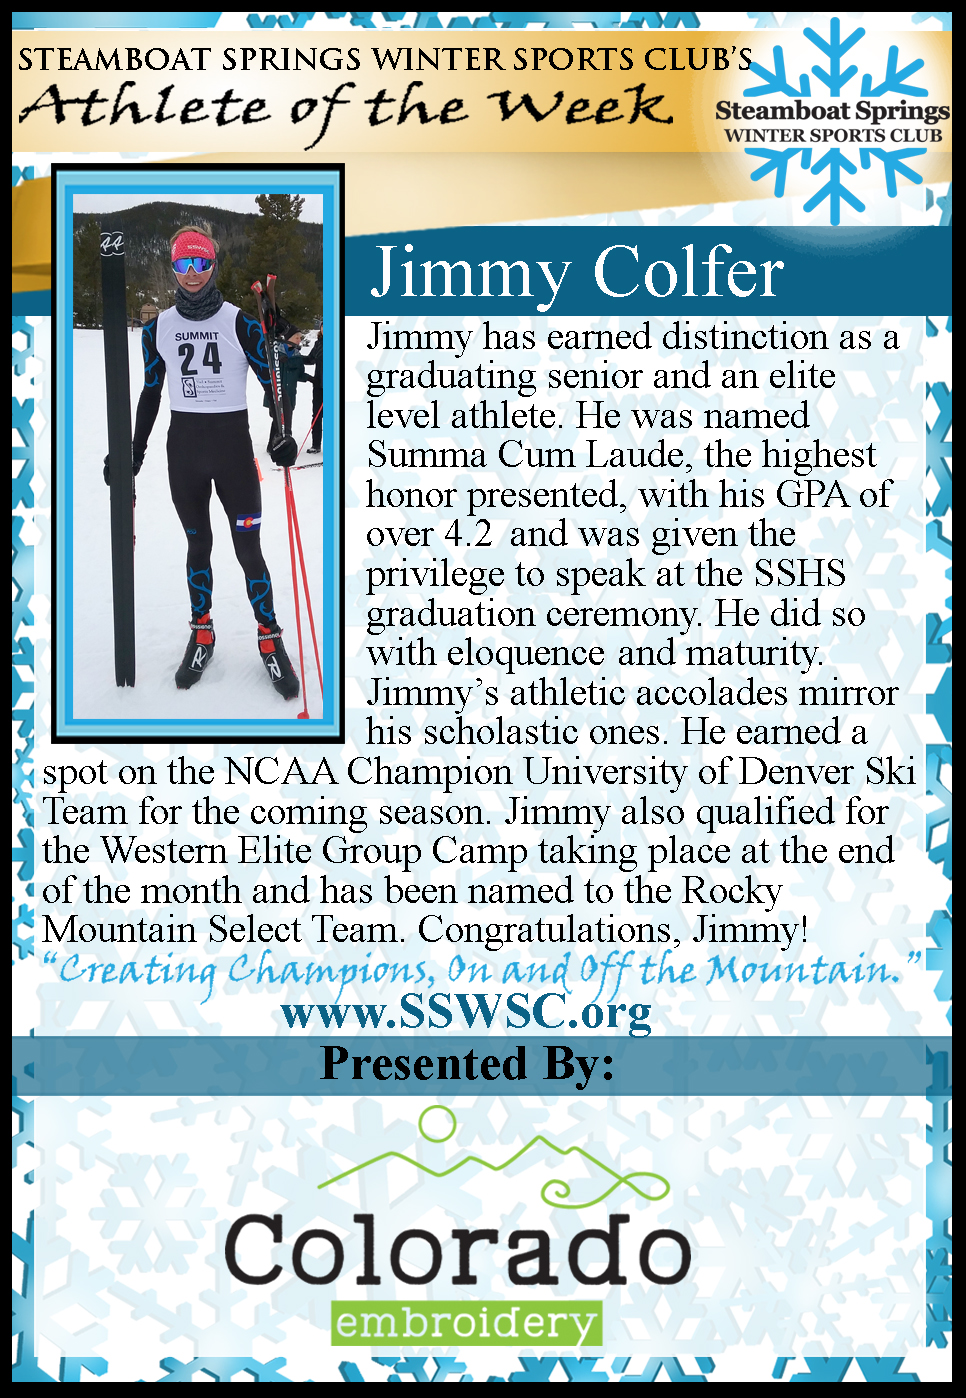 Athlete of the Week Jimmy Colfer